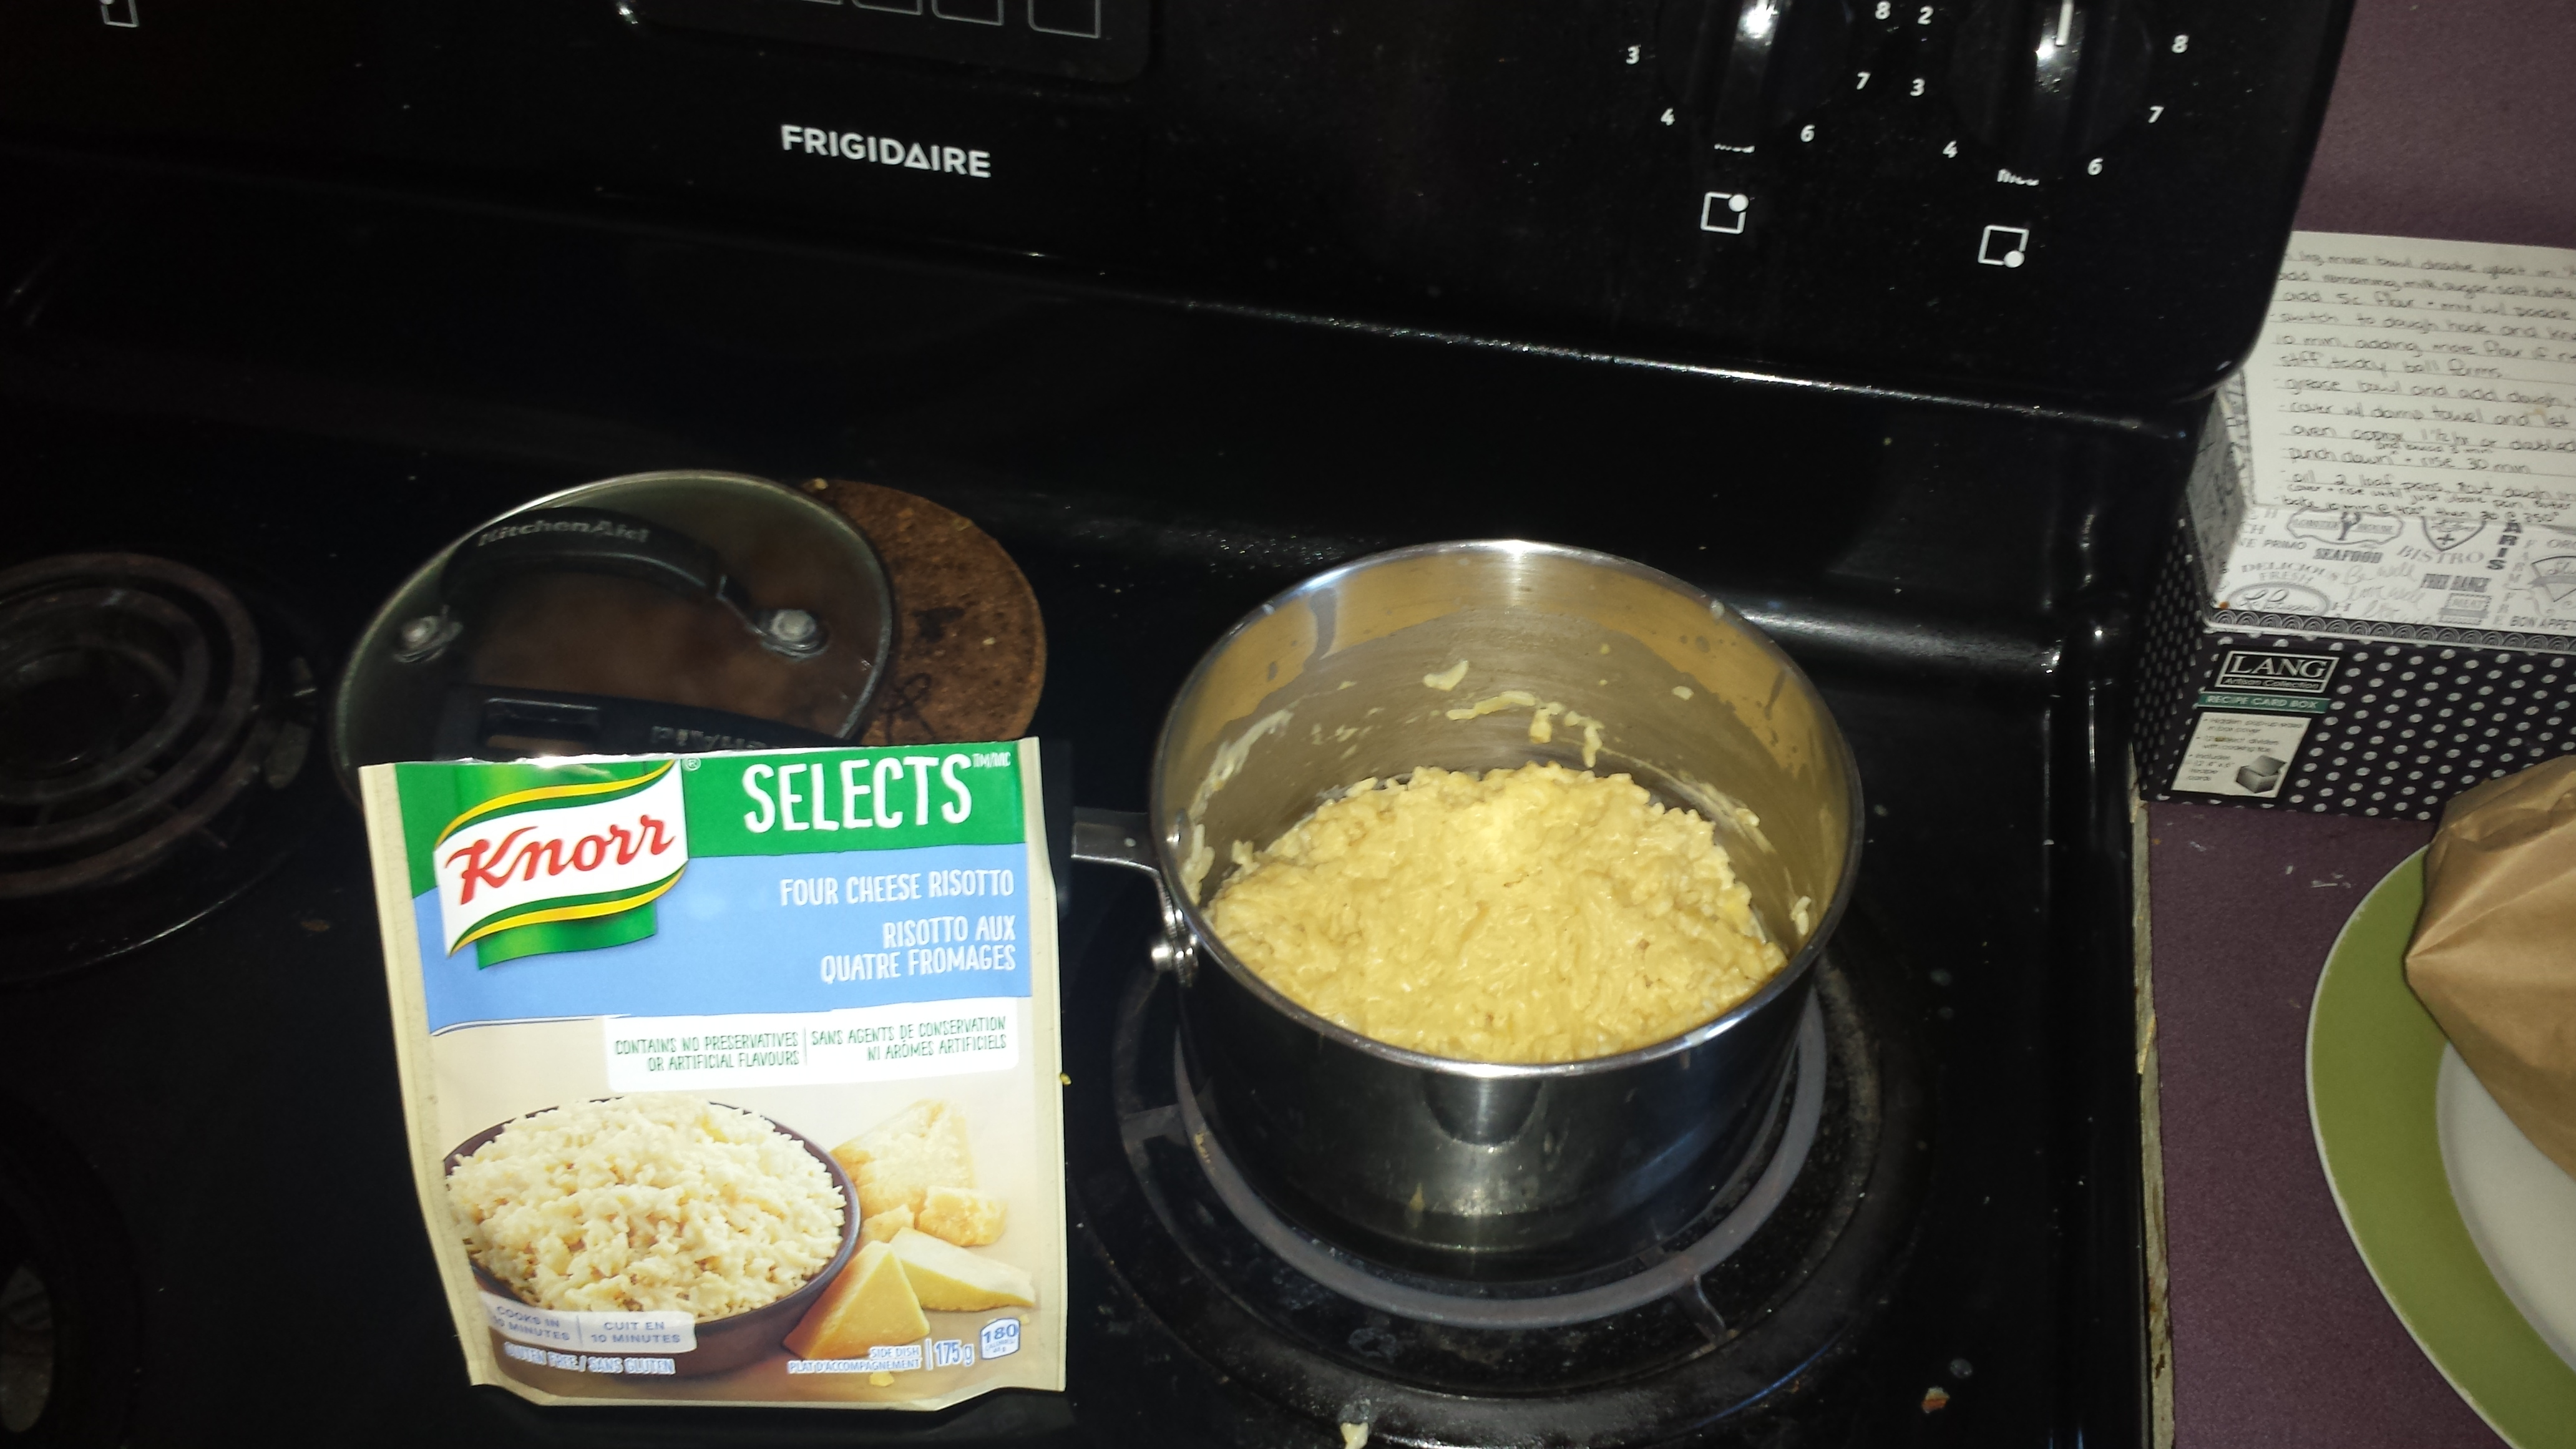 Knorr Selects Four Cheese Risotto Reviews In Packaged Side